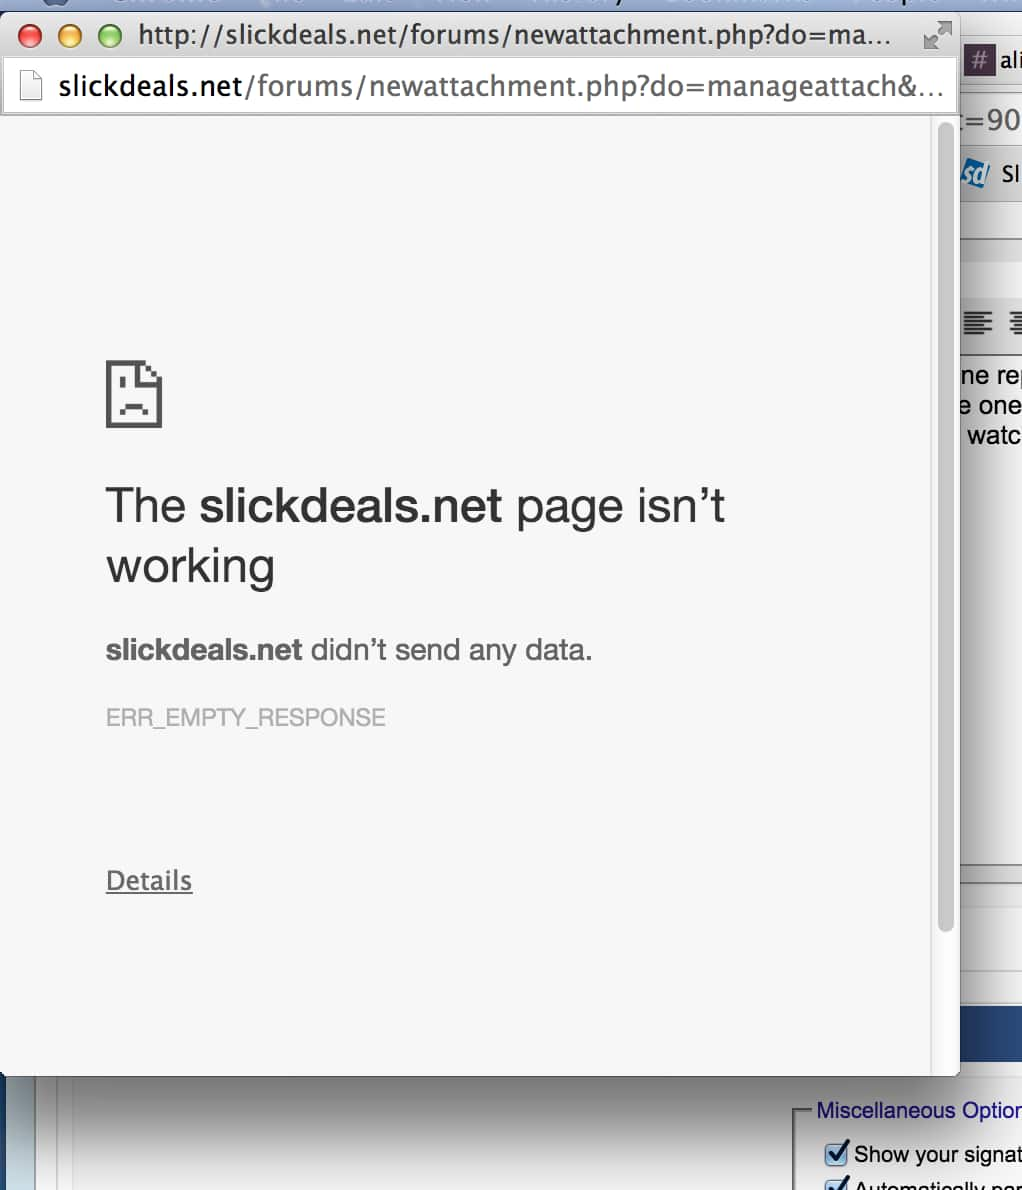 Can't submit to post a deal. - Slickdeals.net